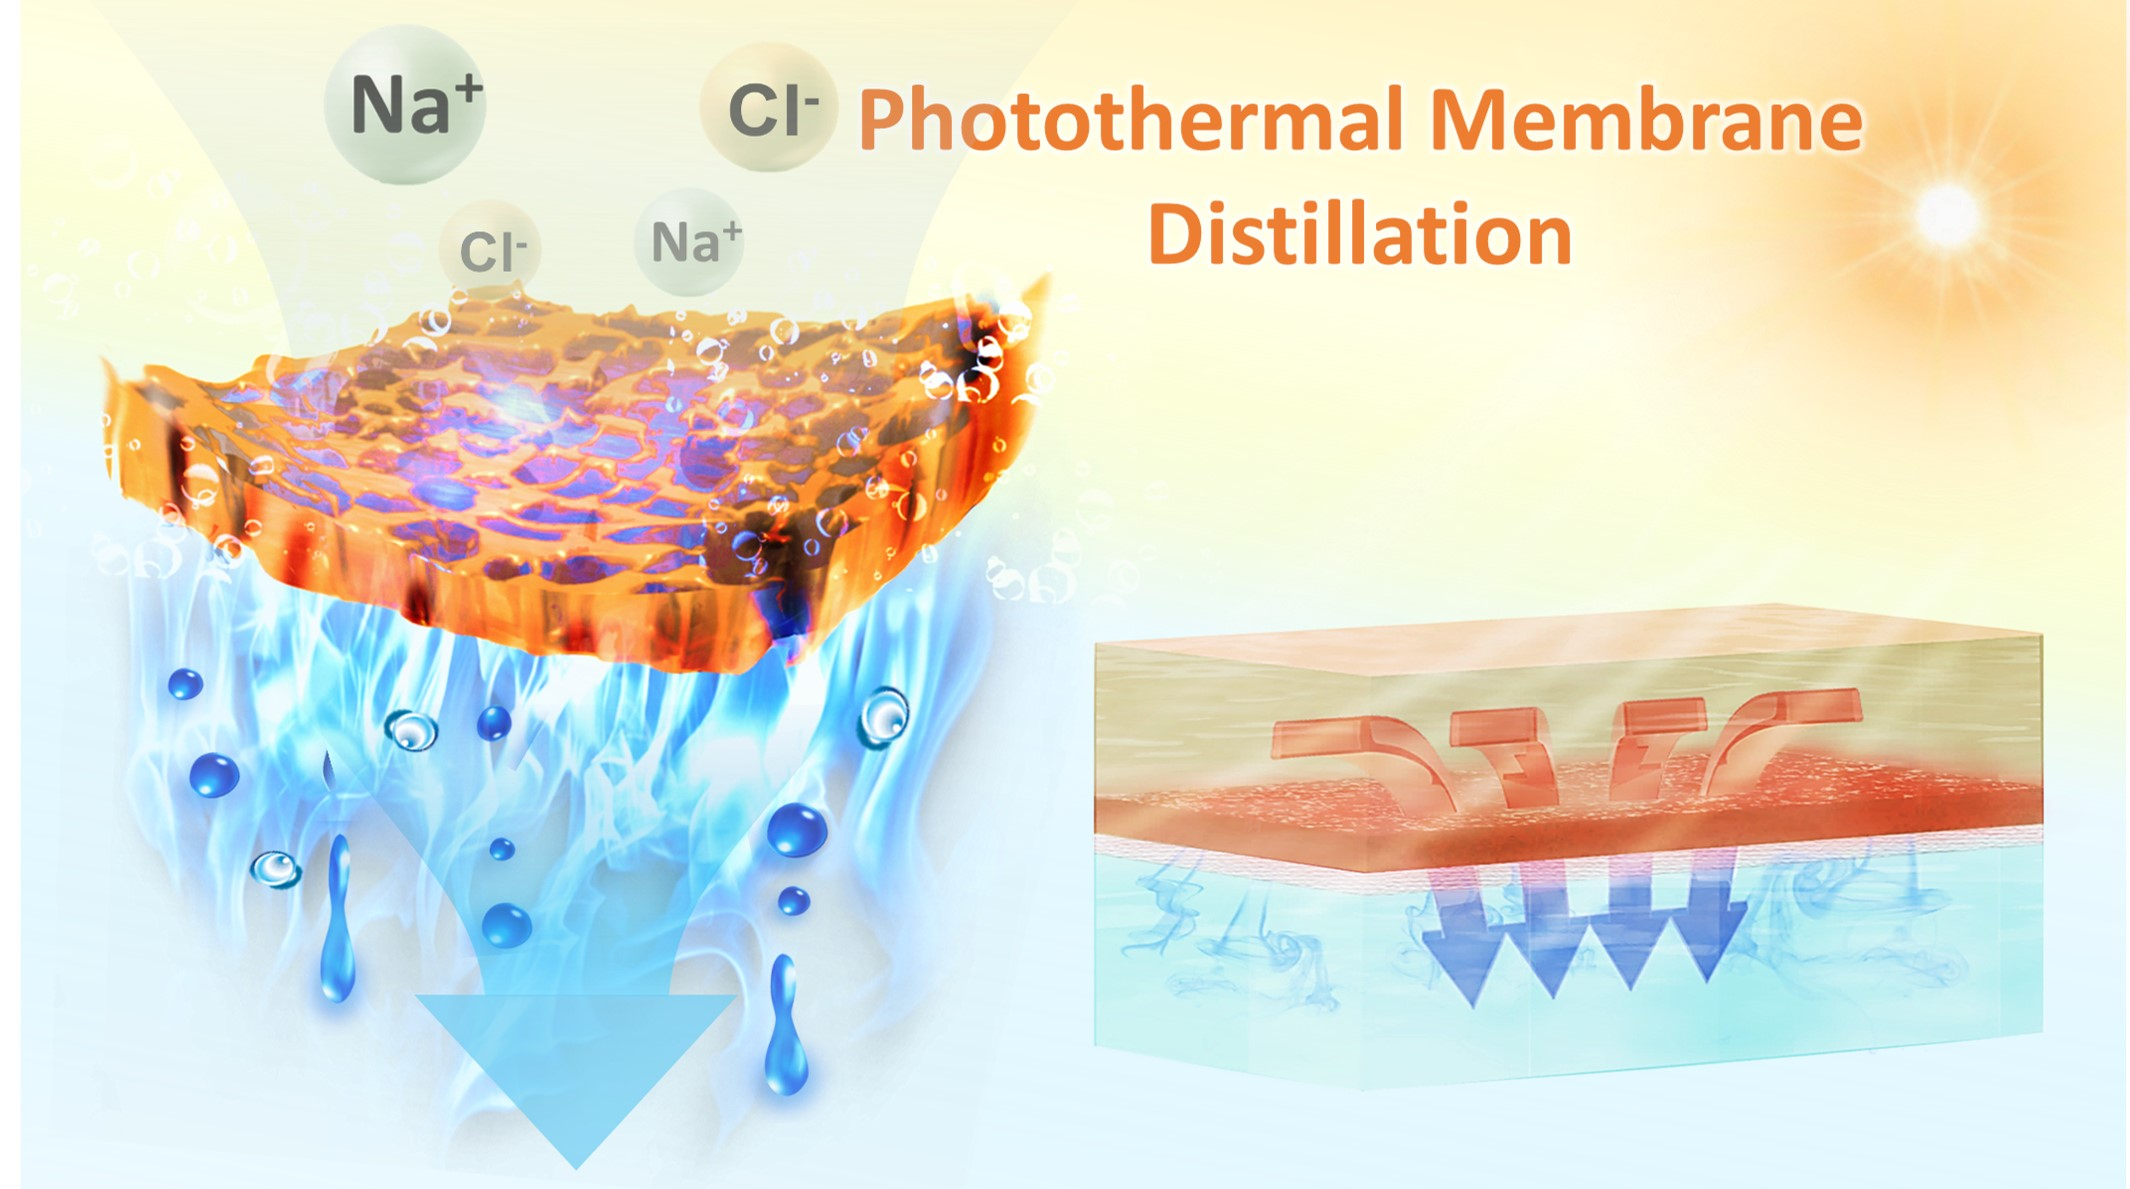 Photothermal membrane distillation